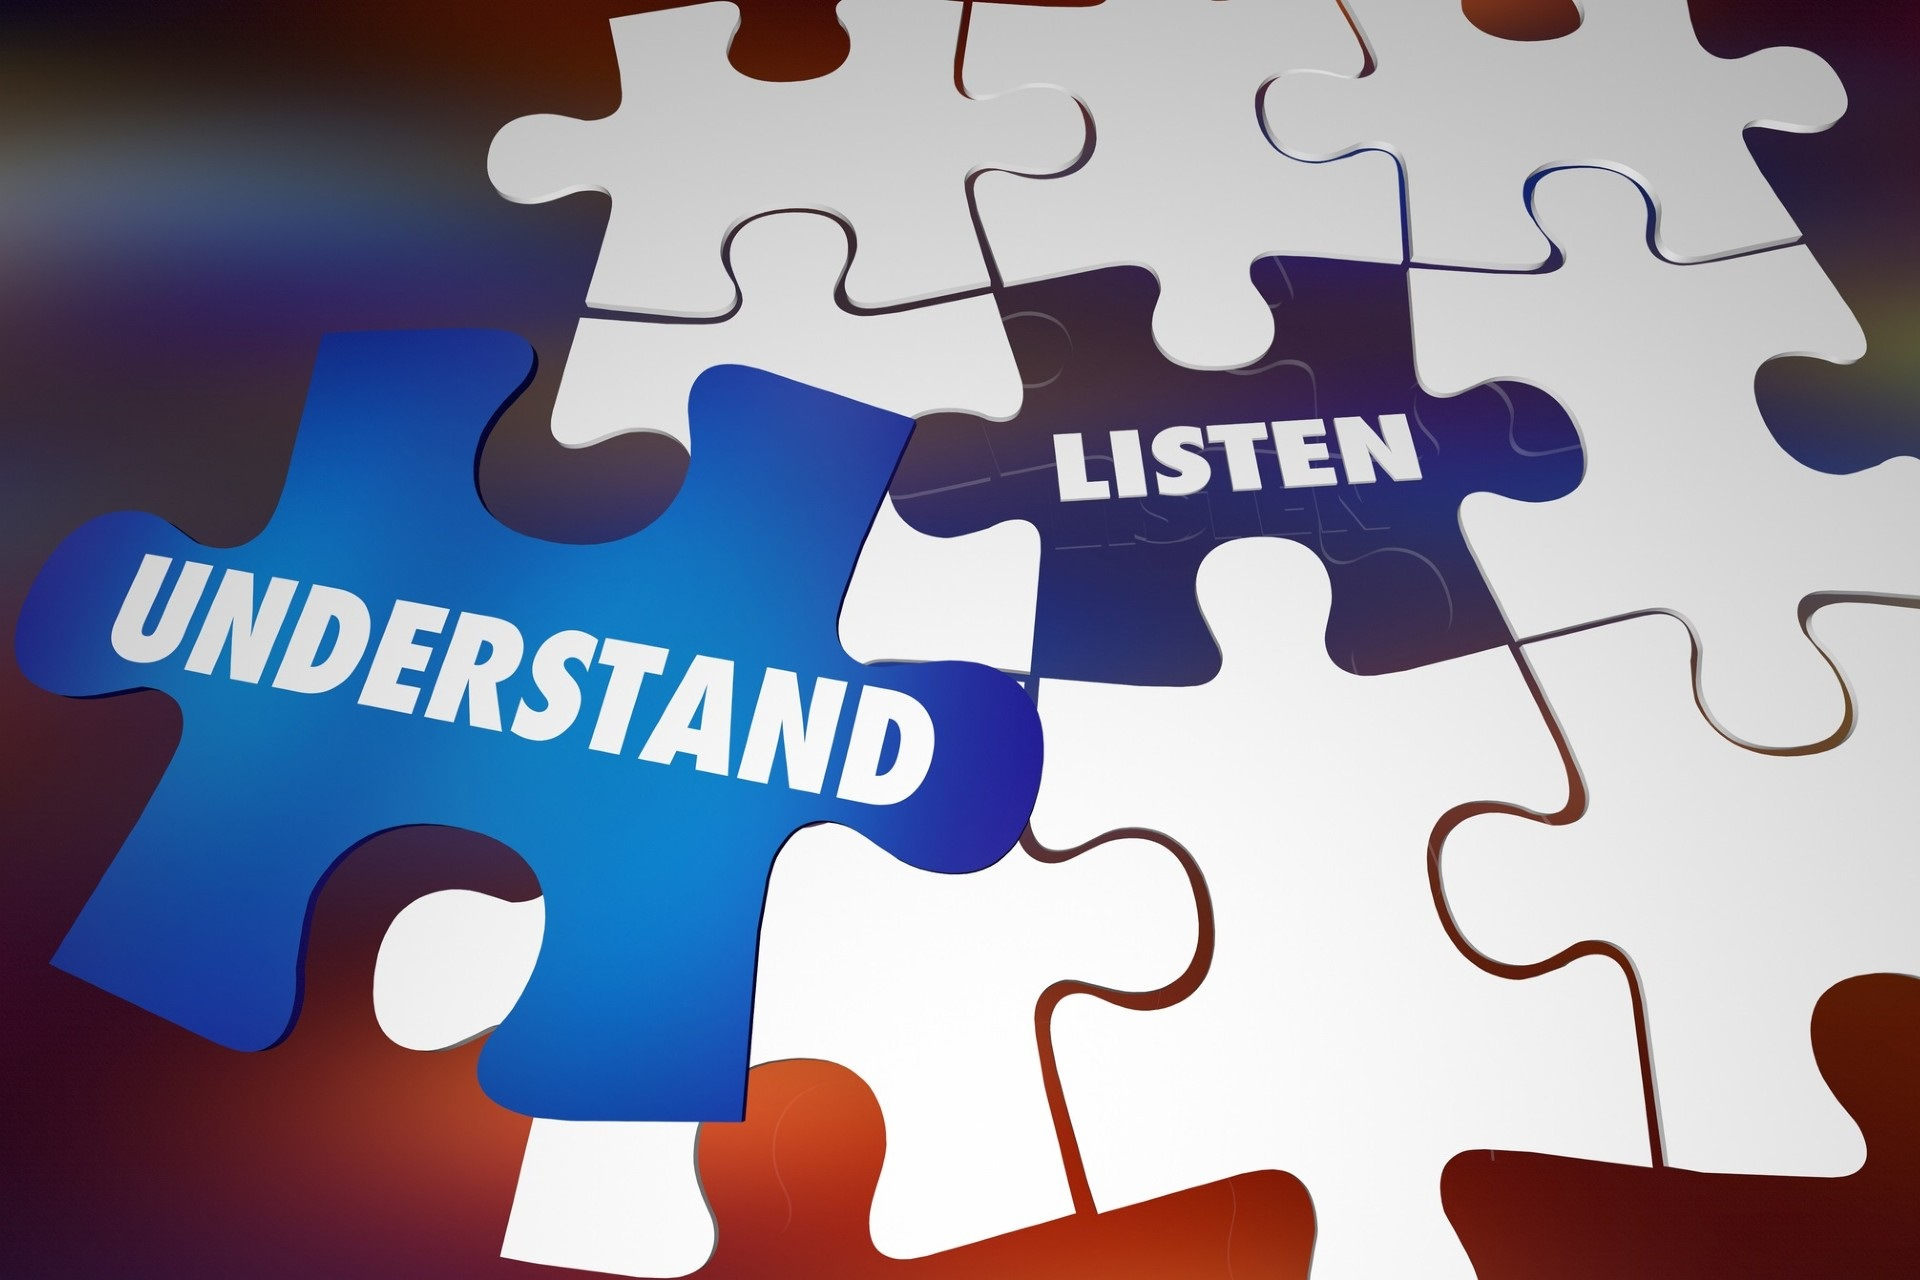 Learning, listening and growing